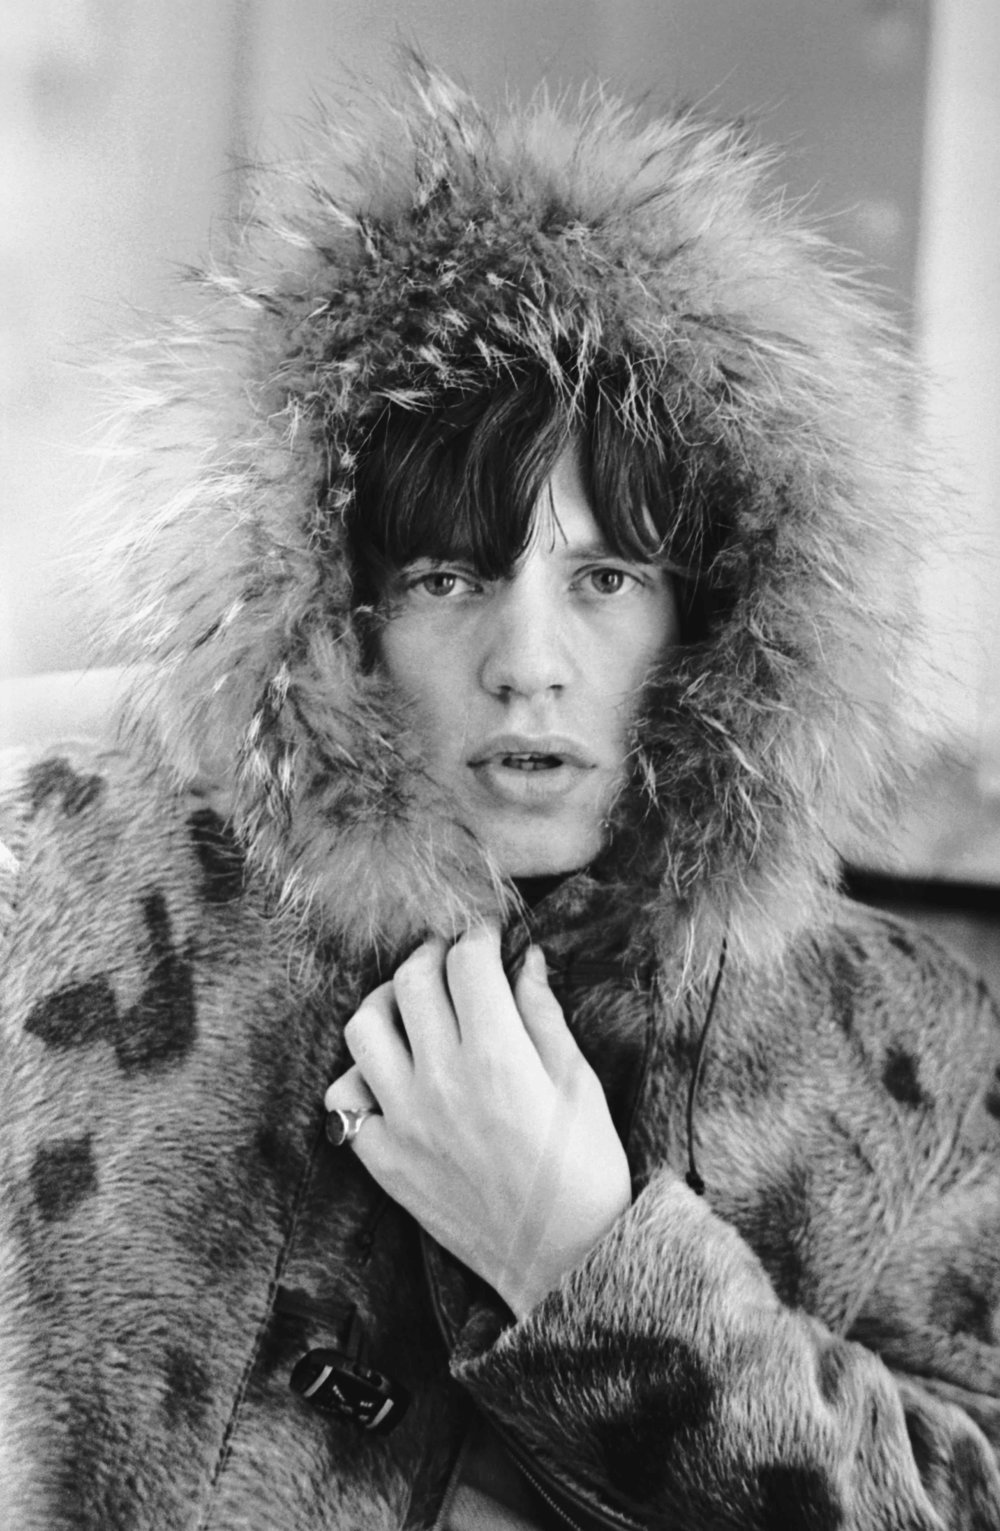 Mick Jagger, London 1964 by Terry O`Neill  Ed 50, Silver gelatin  Available in several sizes  Price on request